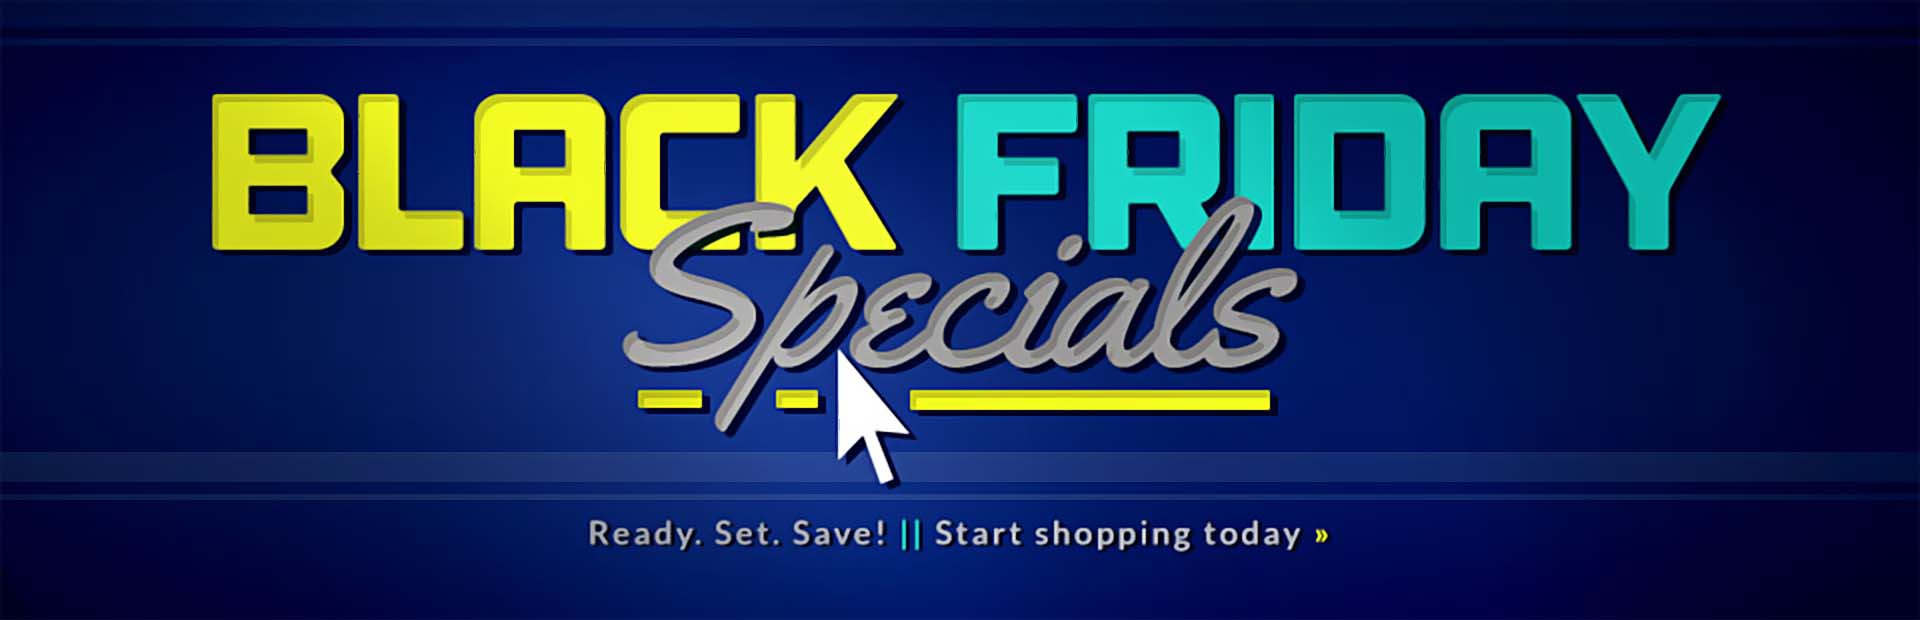 Black Friday Specials: Click here to shop online.